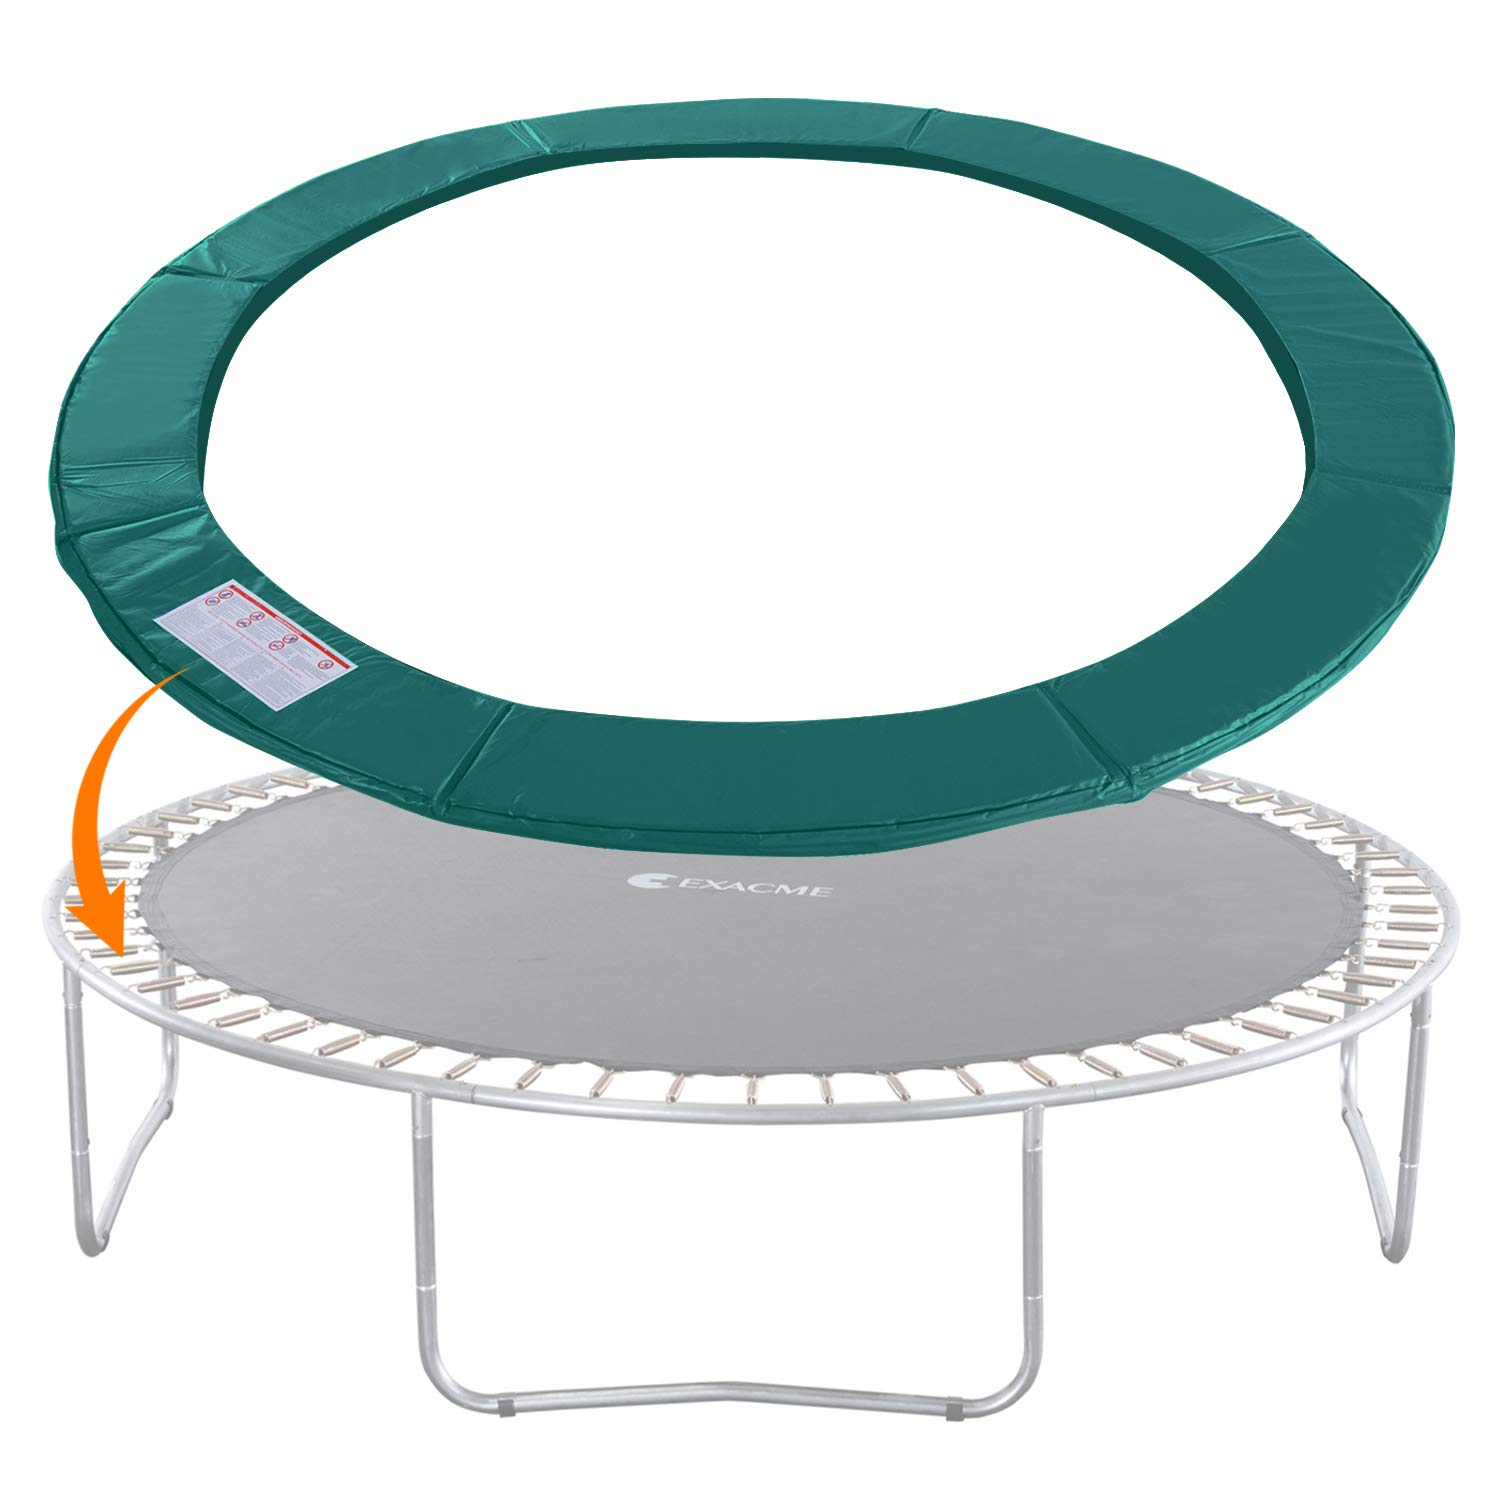 Exacme Trampoline Replacement Safety Pad Round Spring Cover, No Slots (Green, 12 Foot) by Exacme